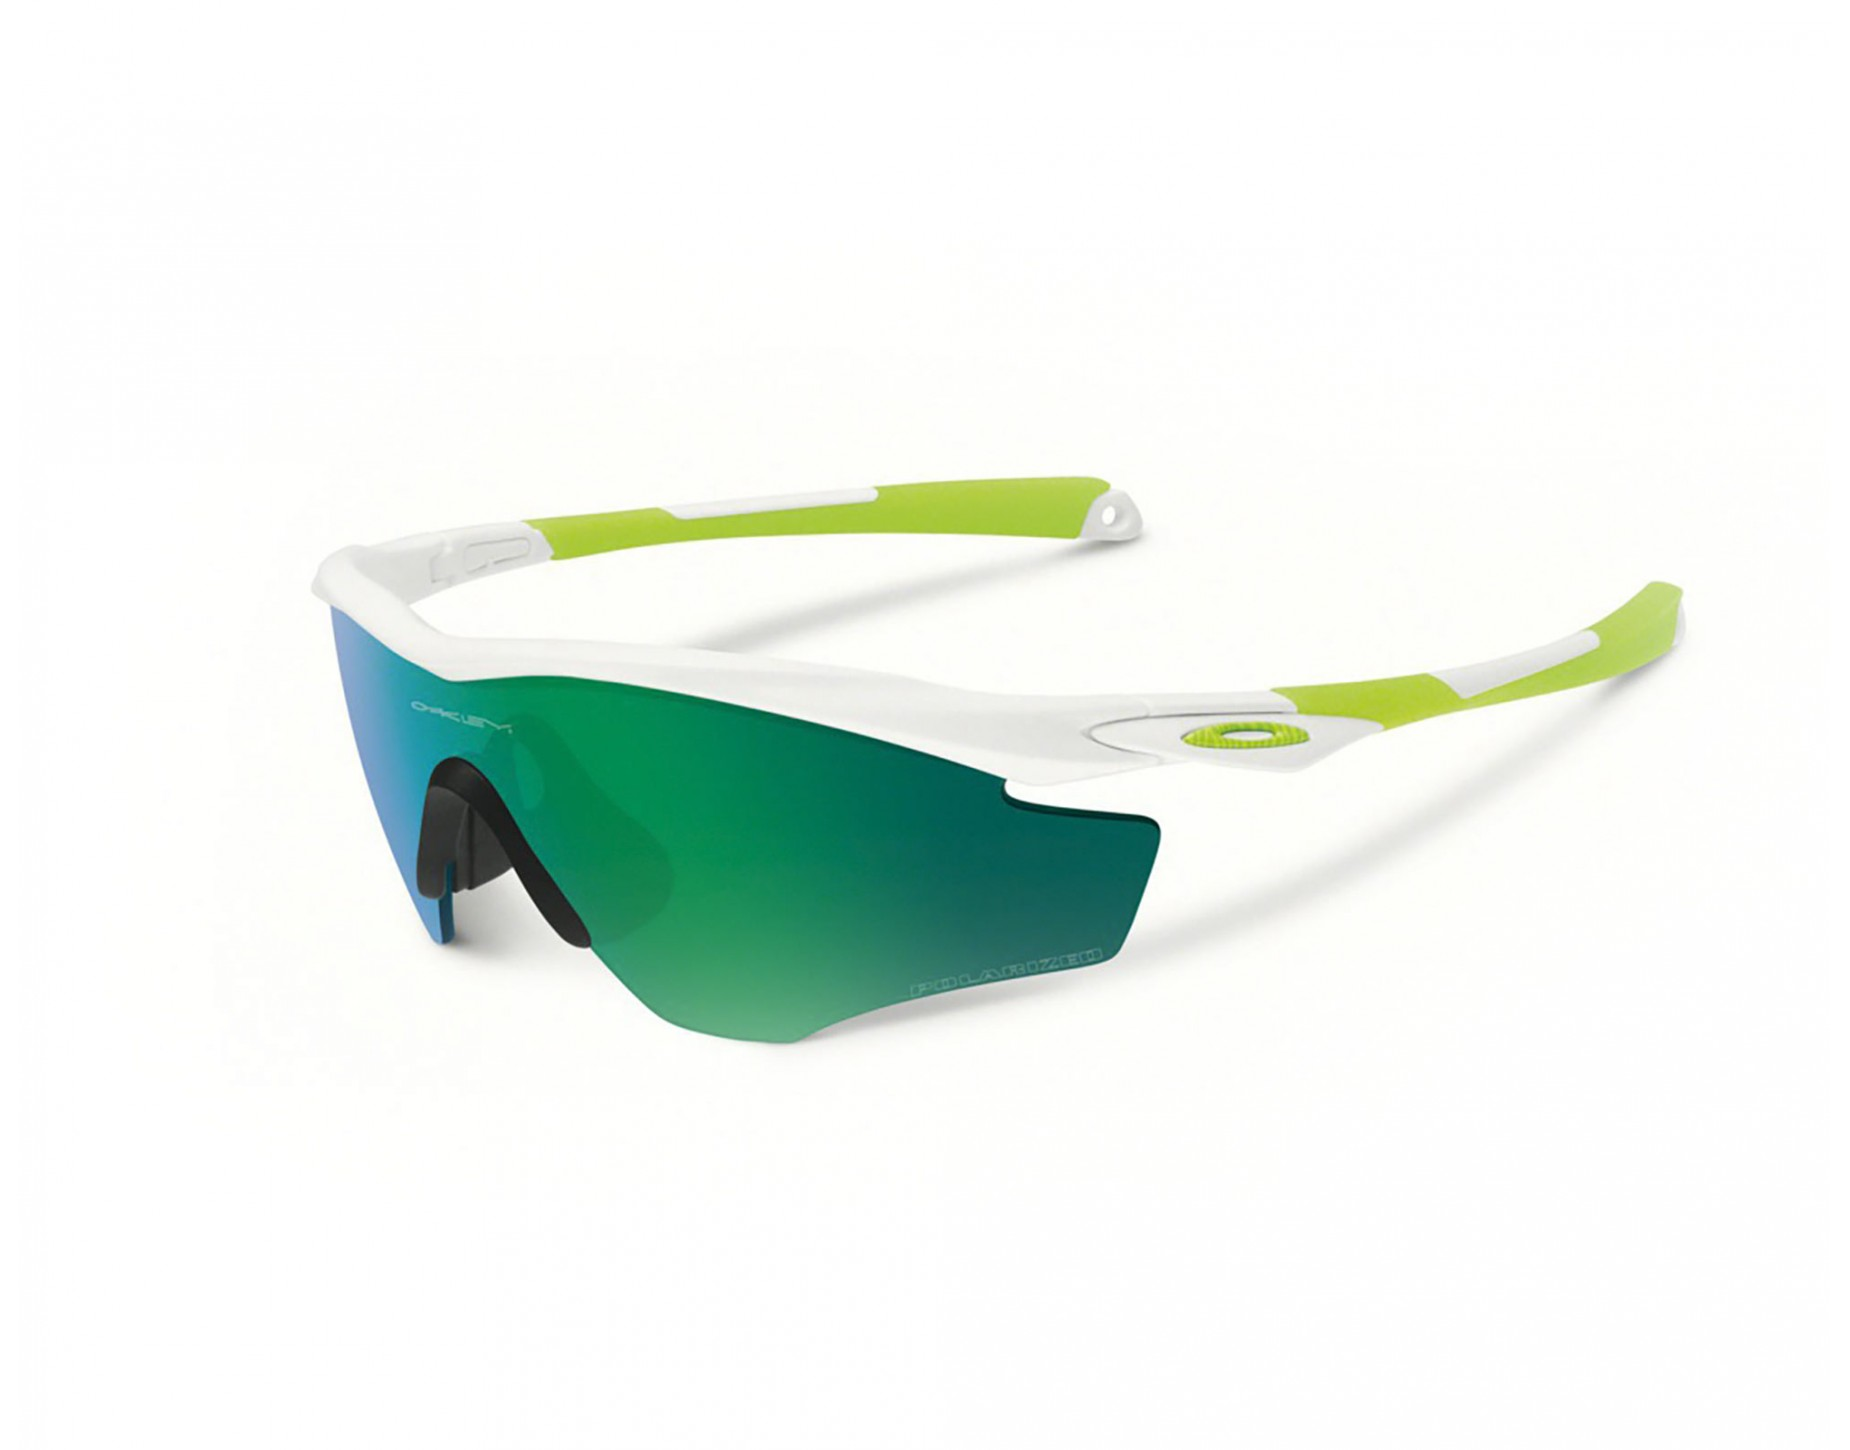 oakley sports goggles  OAKLEY M2 Frame sports glasses \u2013 everything you need!